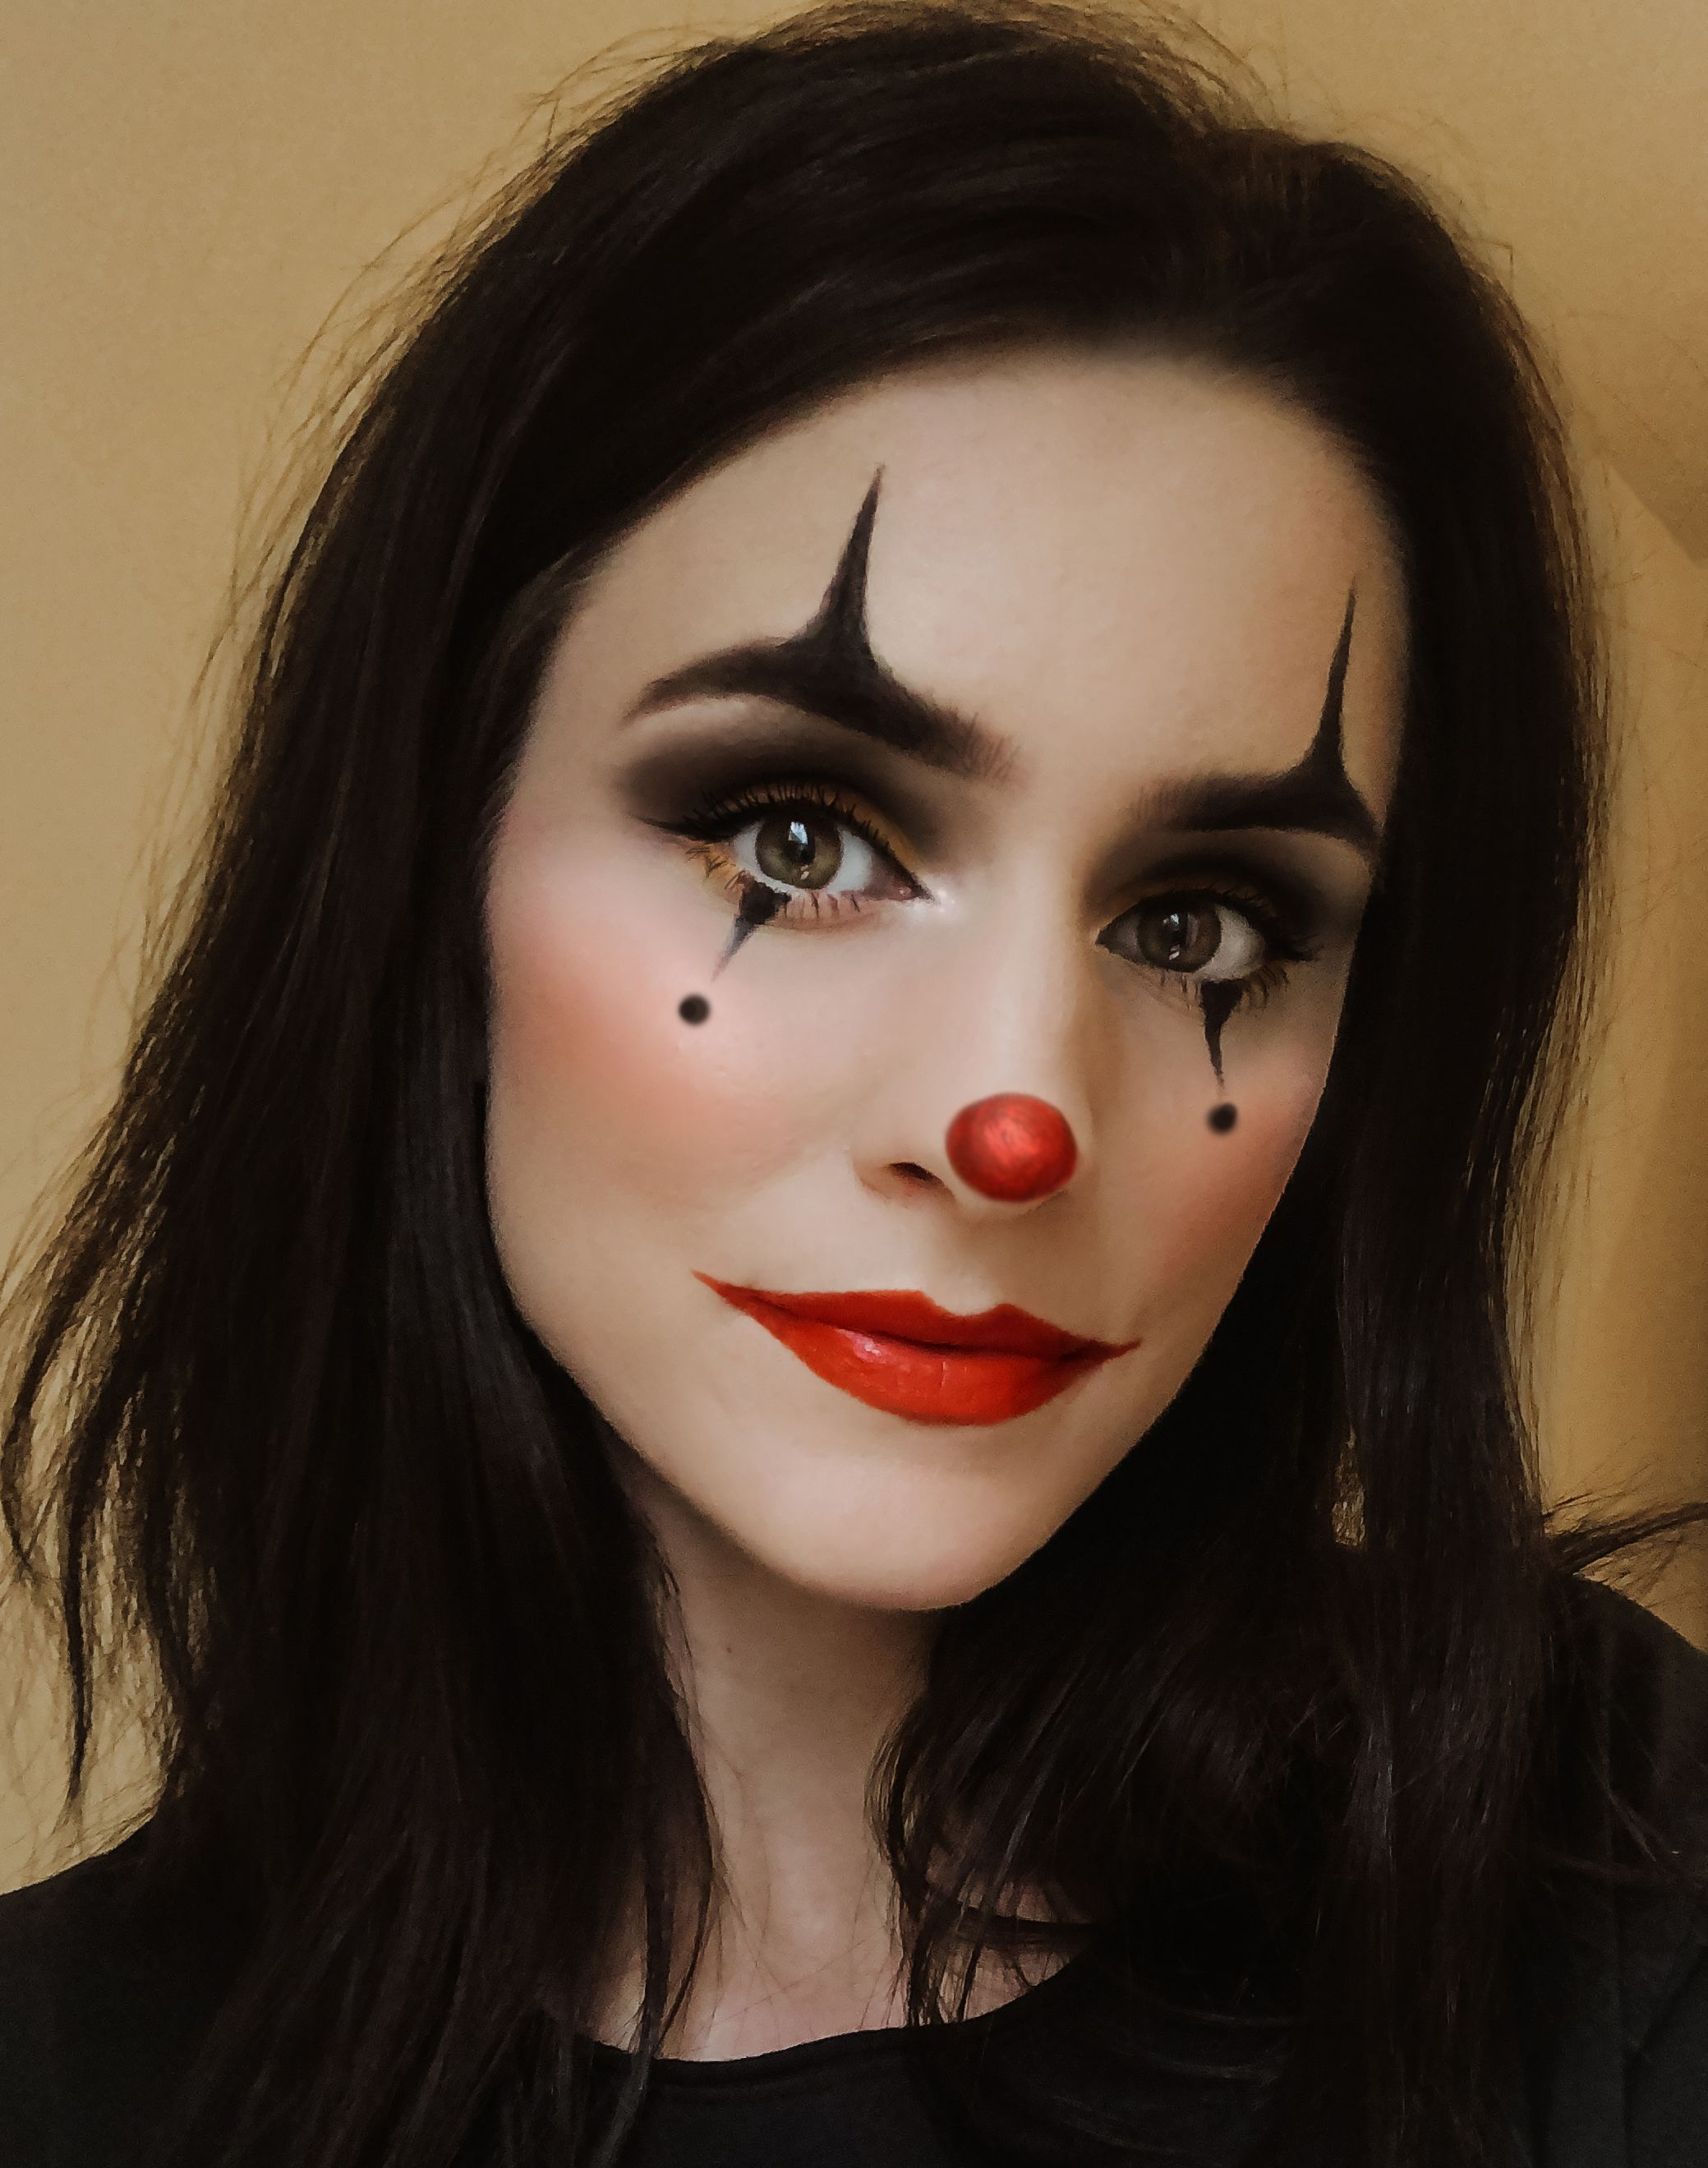 Easy Clown Halloween Makeup Halloween Makeup Pretty Cute Halloween Makeup Halloween Makeup Clown